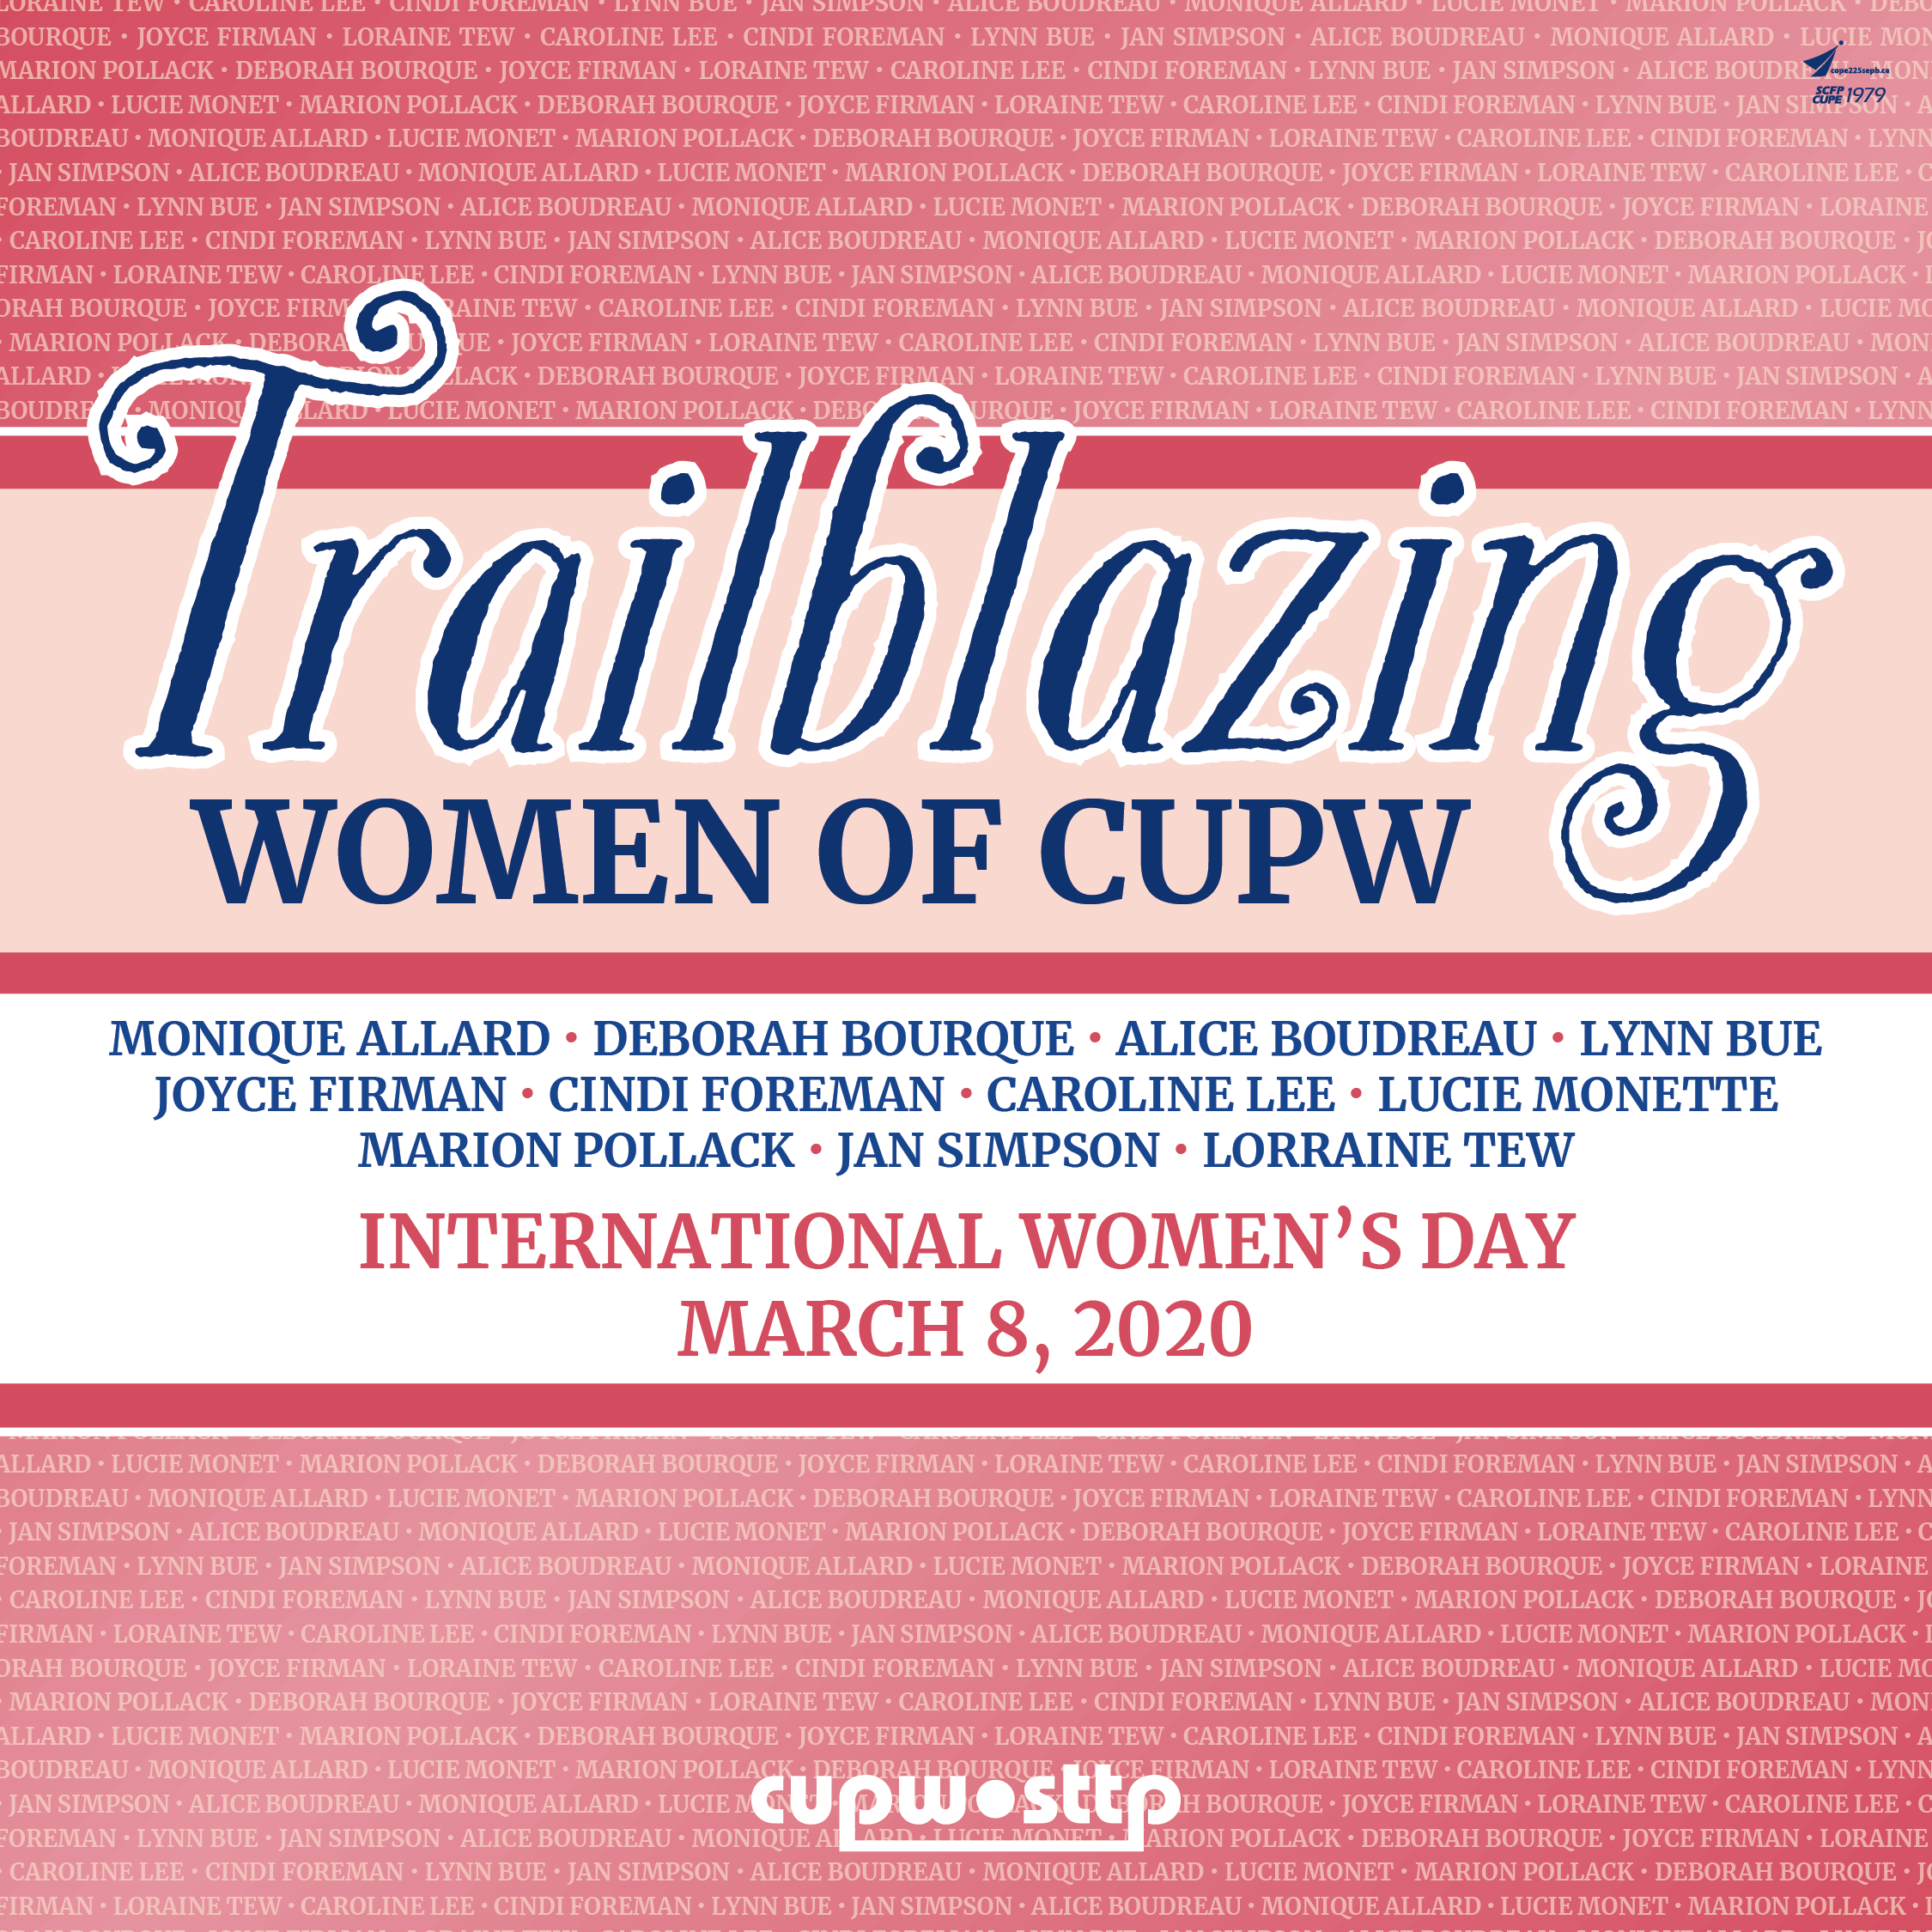 The National Women's committee is launching a campaign to recognize and show gratitude to some of the trailblazing women whose expression of their feminism and their trade unionism have made a lasting impact on our union.